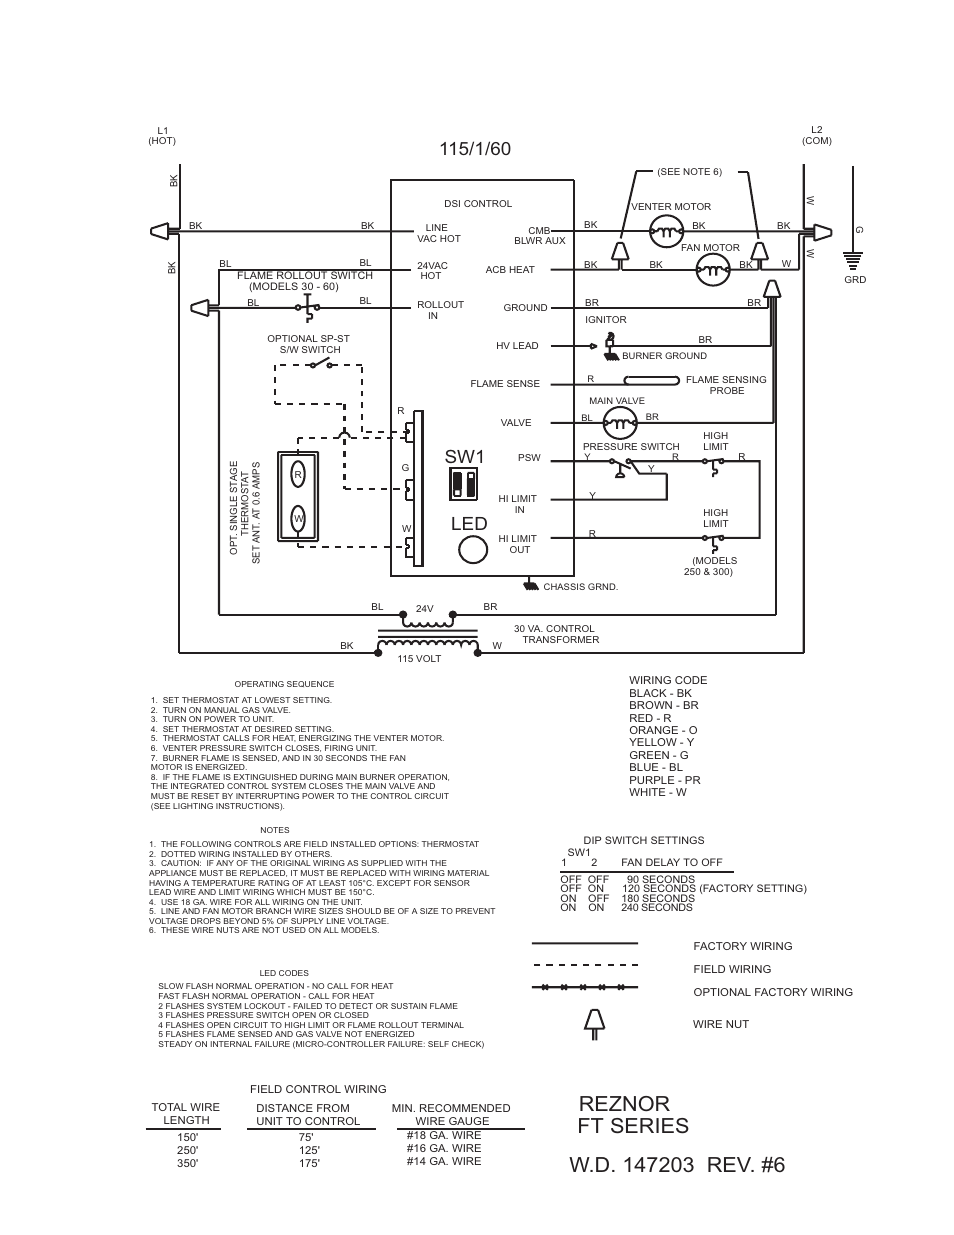 reznor ft unit installation manual page13?resized665%2C861 reznor heater wiring schematic efcaviation com reznor eexl wiring diagram at webbmarketing.co